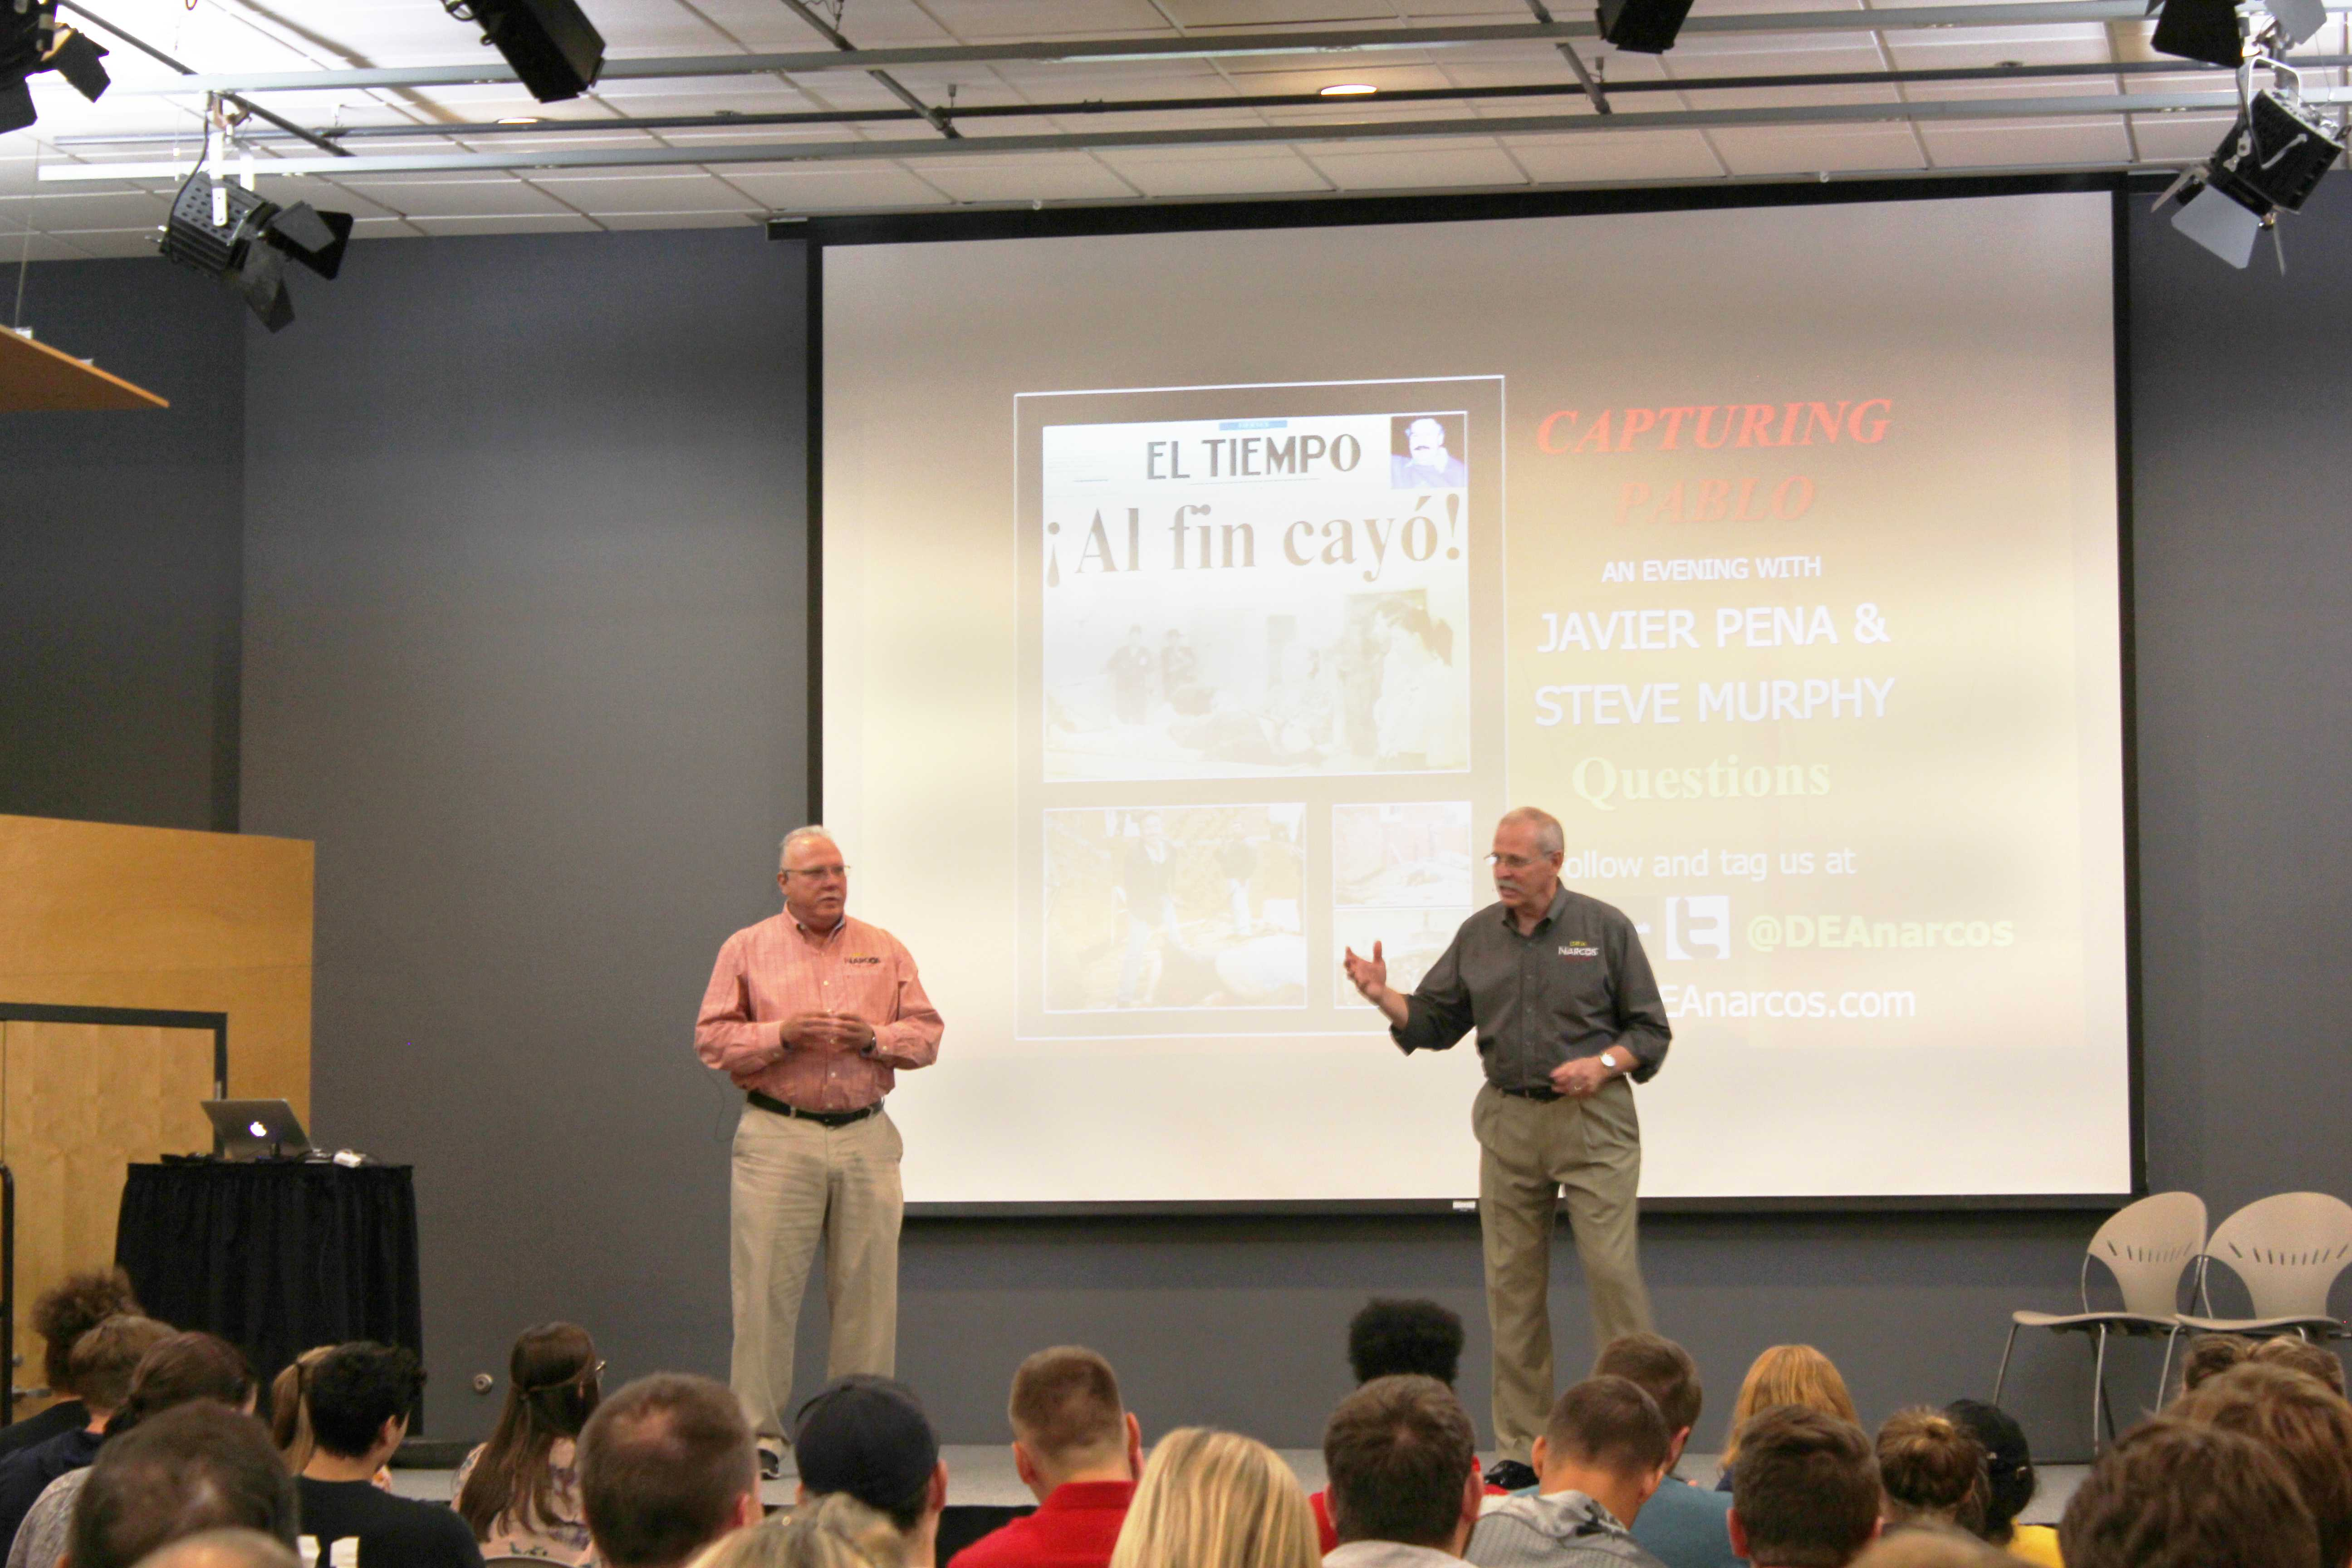 Former DEA agents who inspired Netflix series 'Narcos' speak at UWO about their manhunt